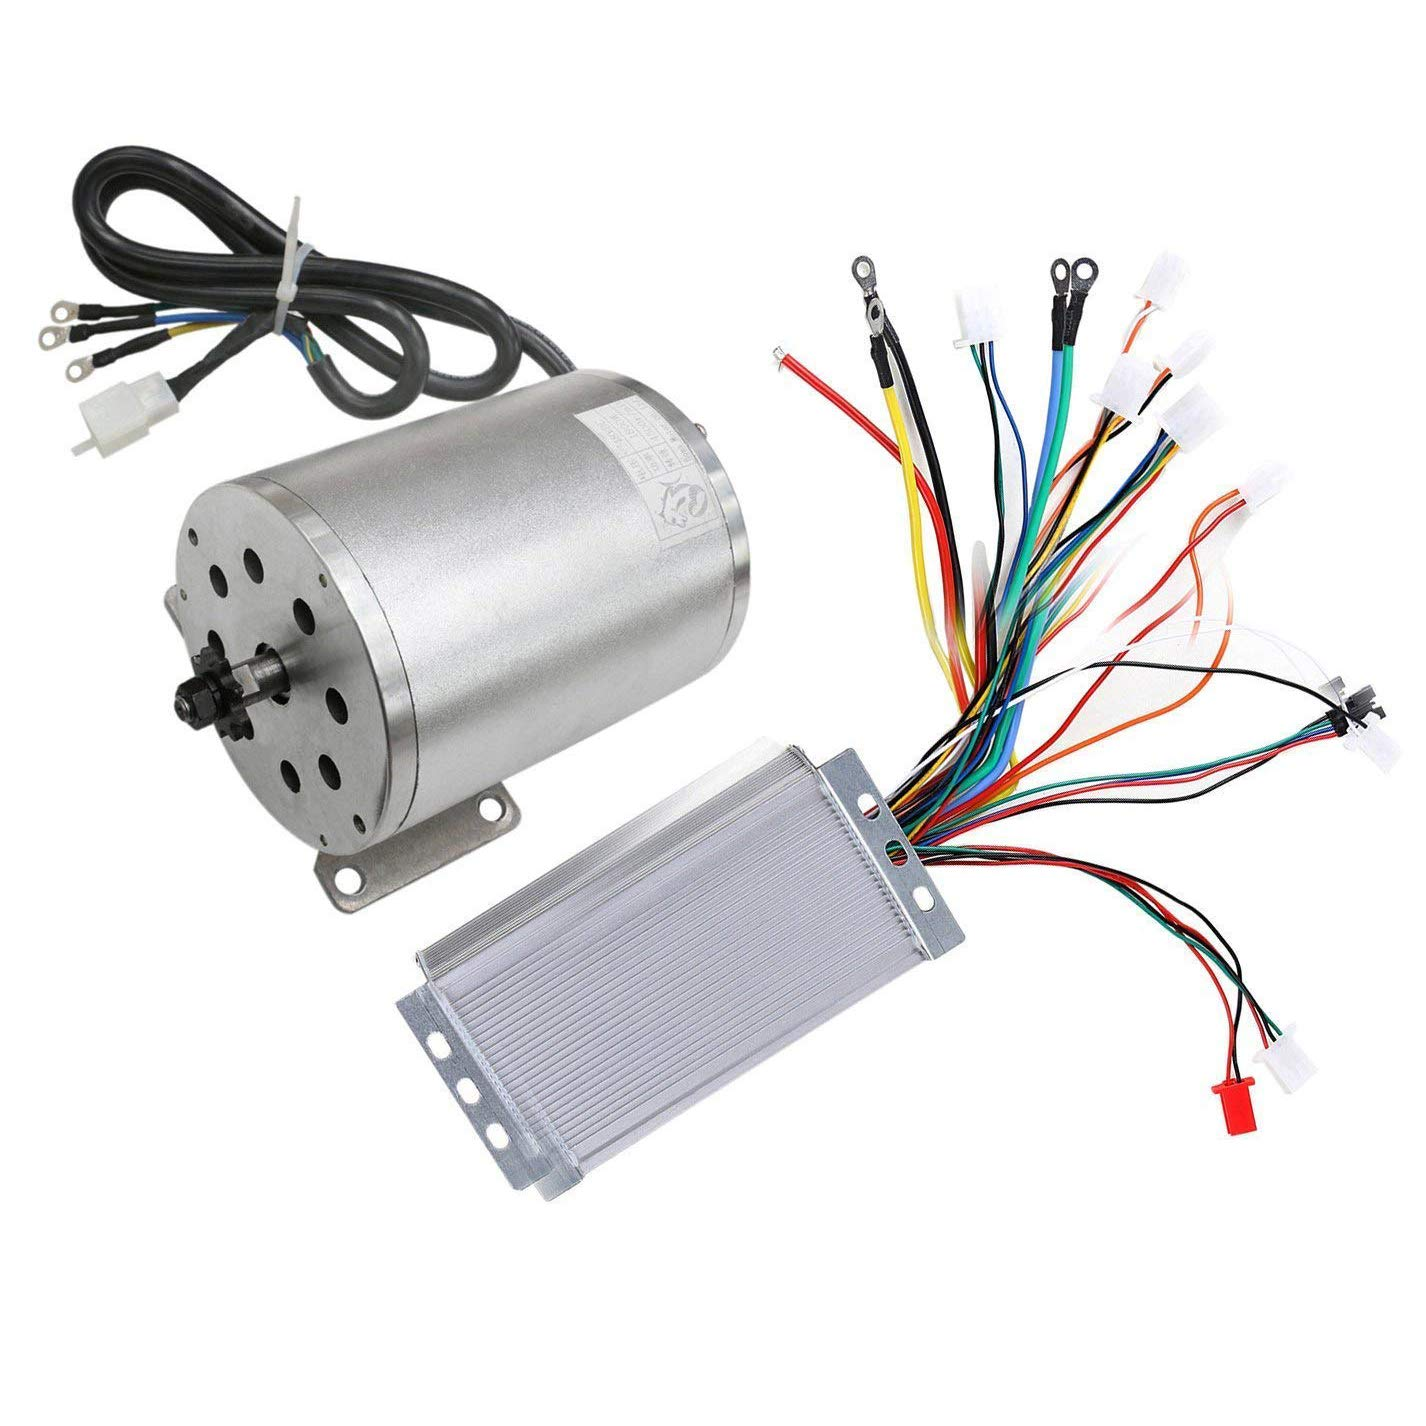 Tdpro 48v 1800w Brushless Electric Motor And Controller Set For Go Motorized Bicycle Wiring Diagram Kart Scooter E Bike Atv Moped Mini Bikes